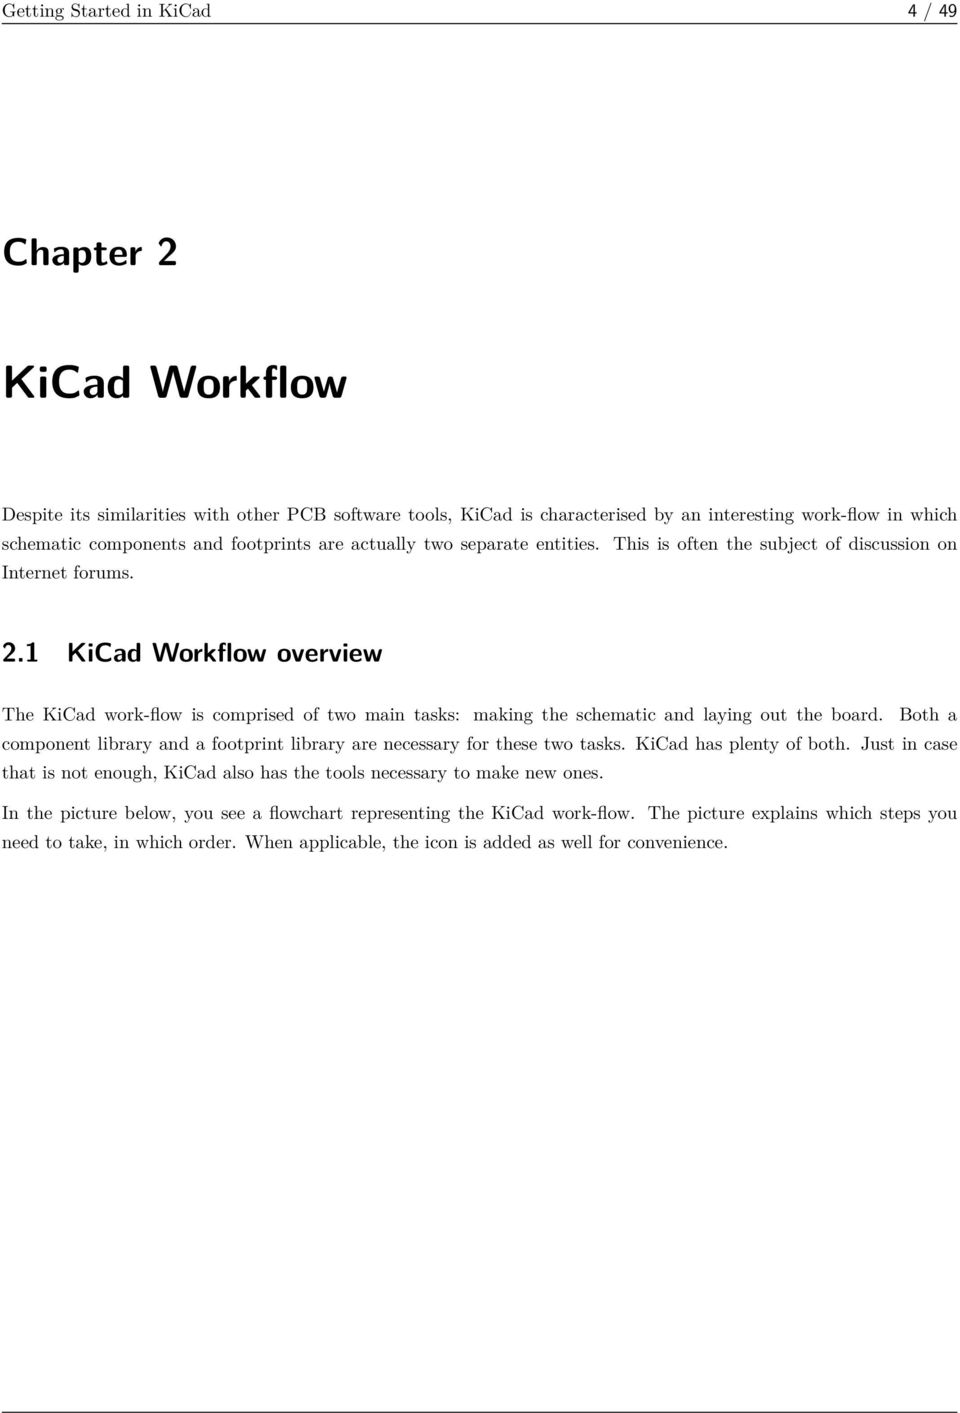 Getting Started in KiCad - PDF